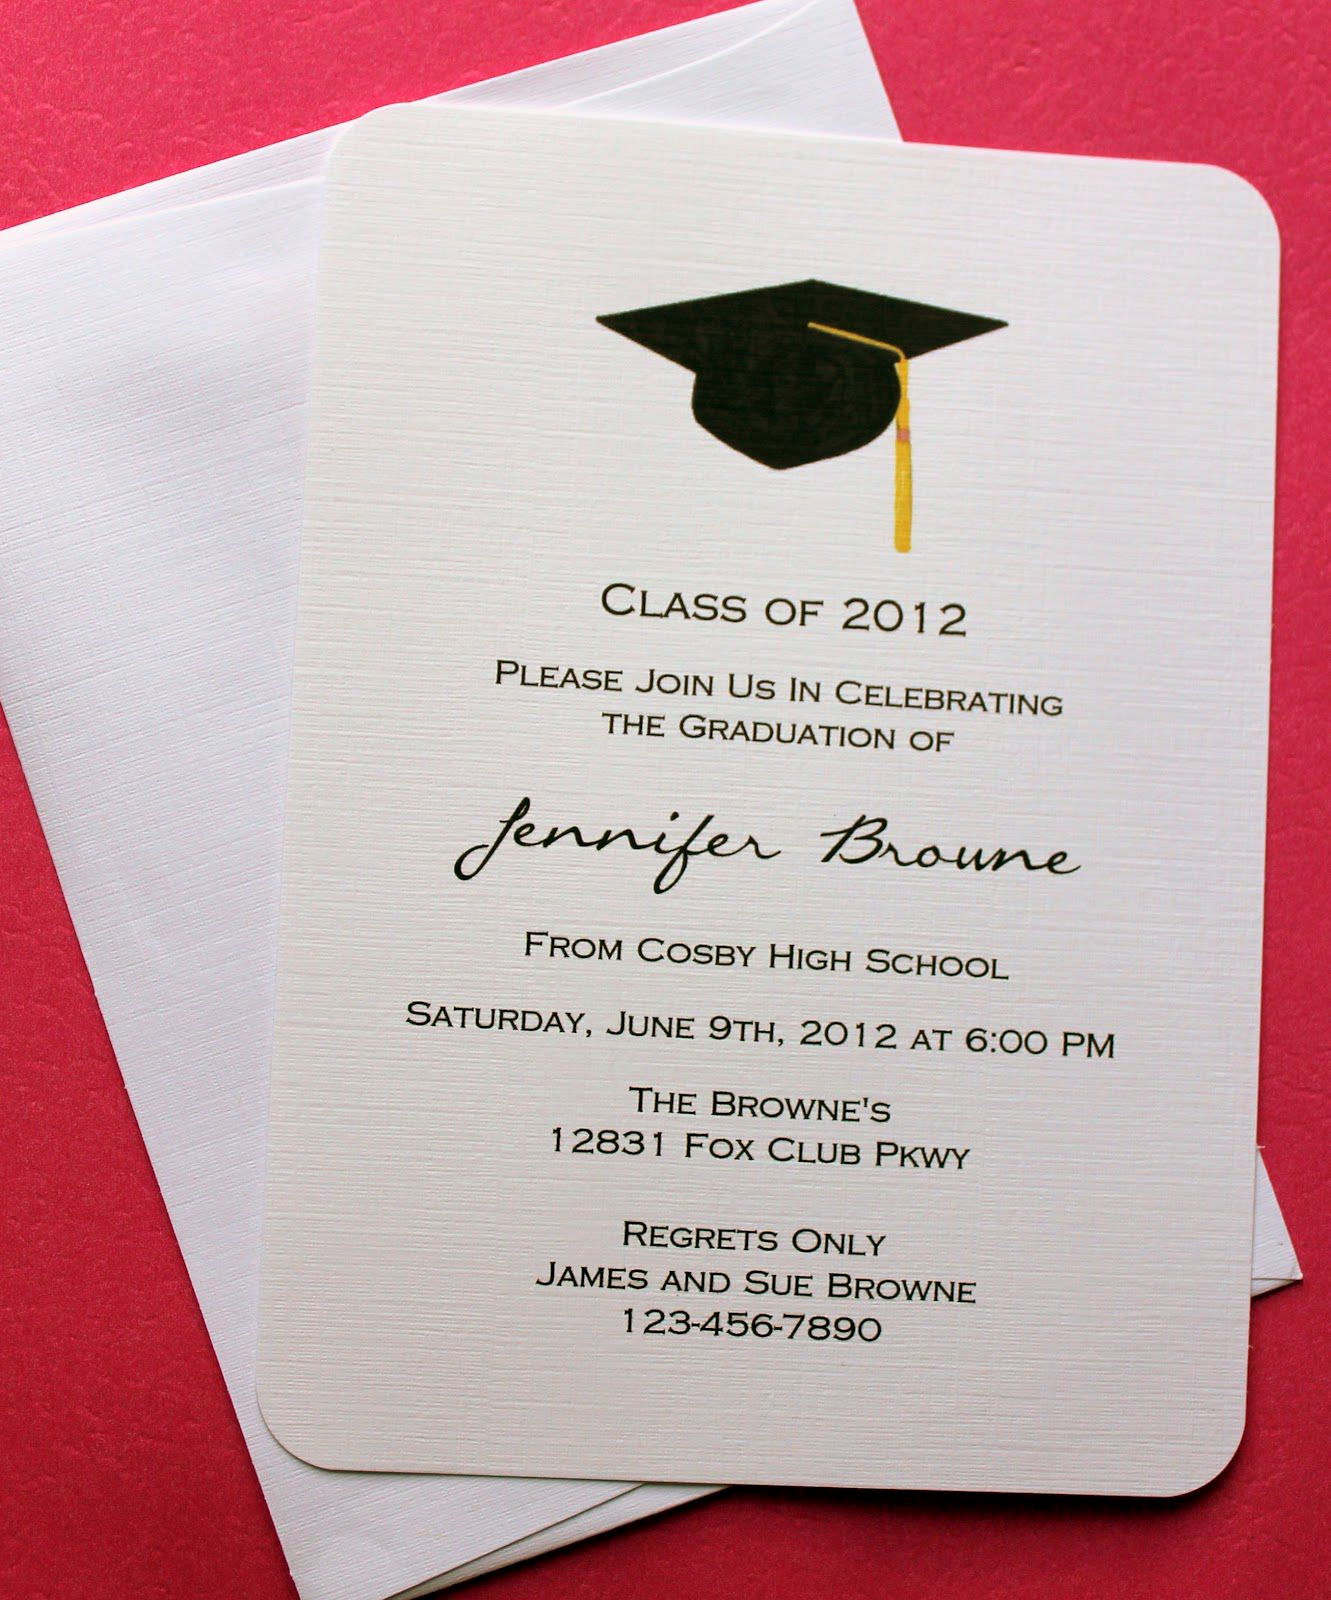 Graduation Party Invitation Template Word New Graduation Invitation Template Graduation Invitation